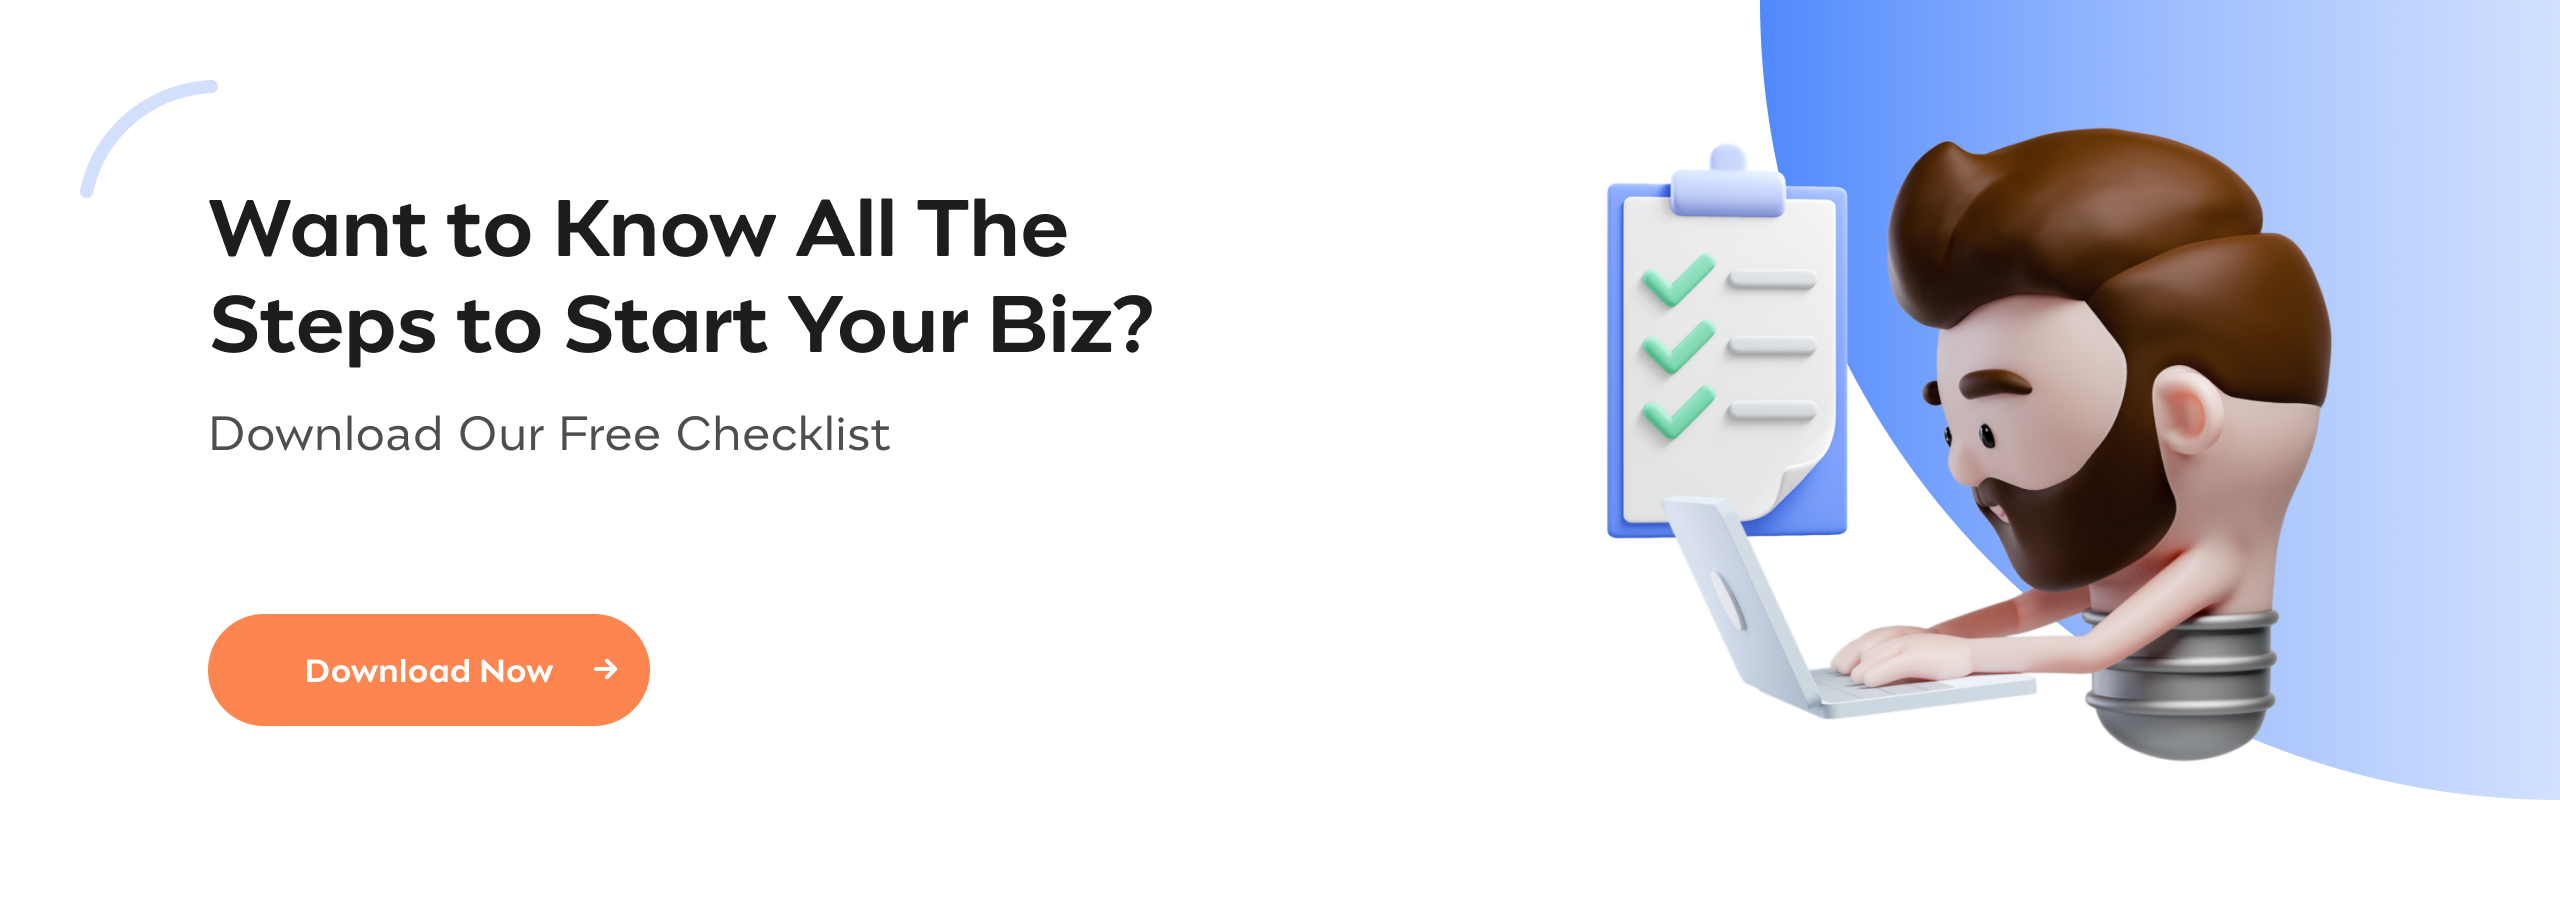 Incfile | Start a Business Checklist | Incfile